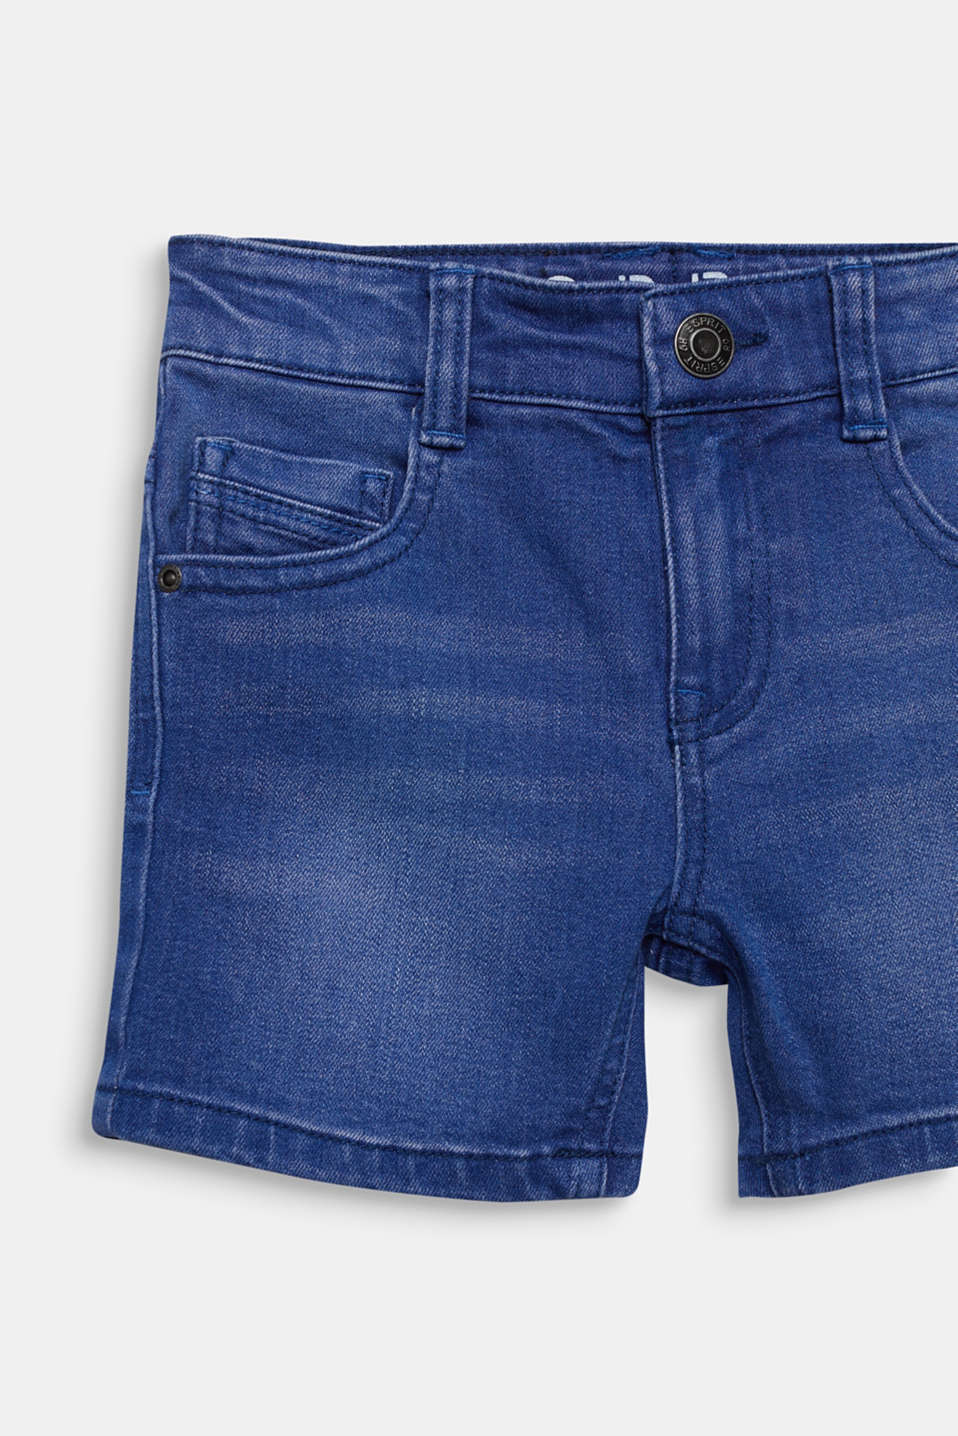 Stretch coloured denim shorts, adjustable waistband, BRIGHT BLUE DE, detail image number 2